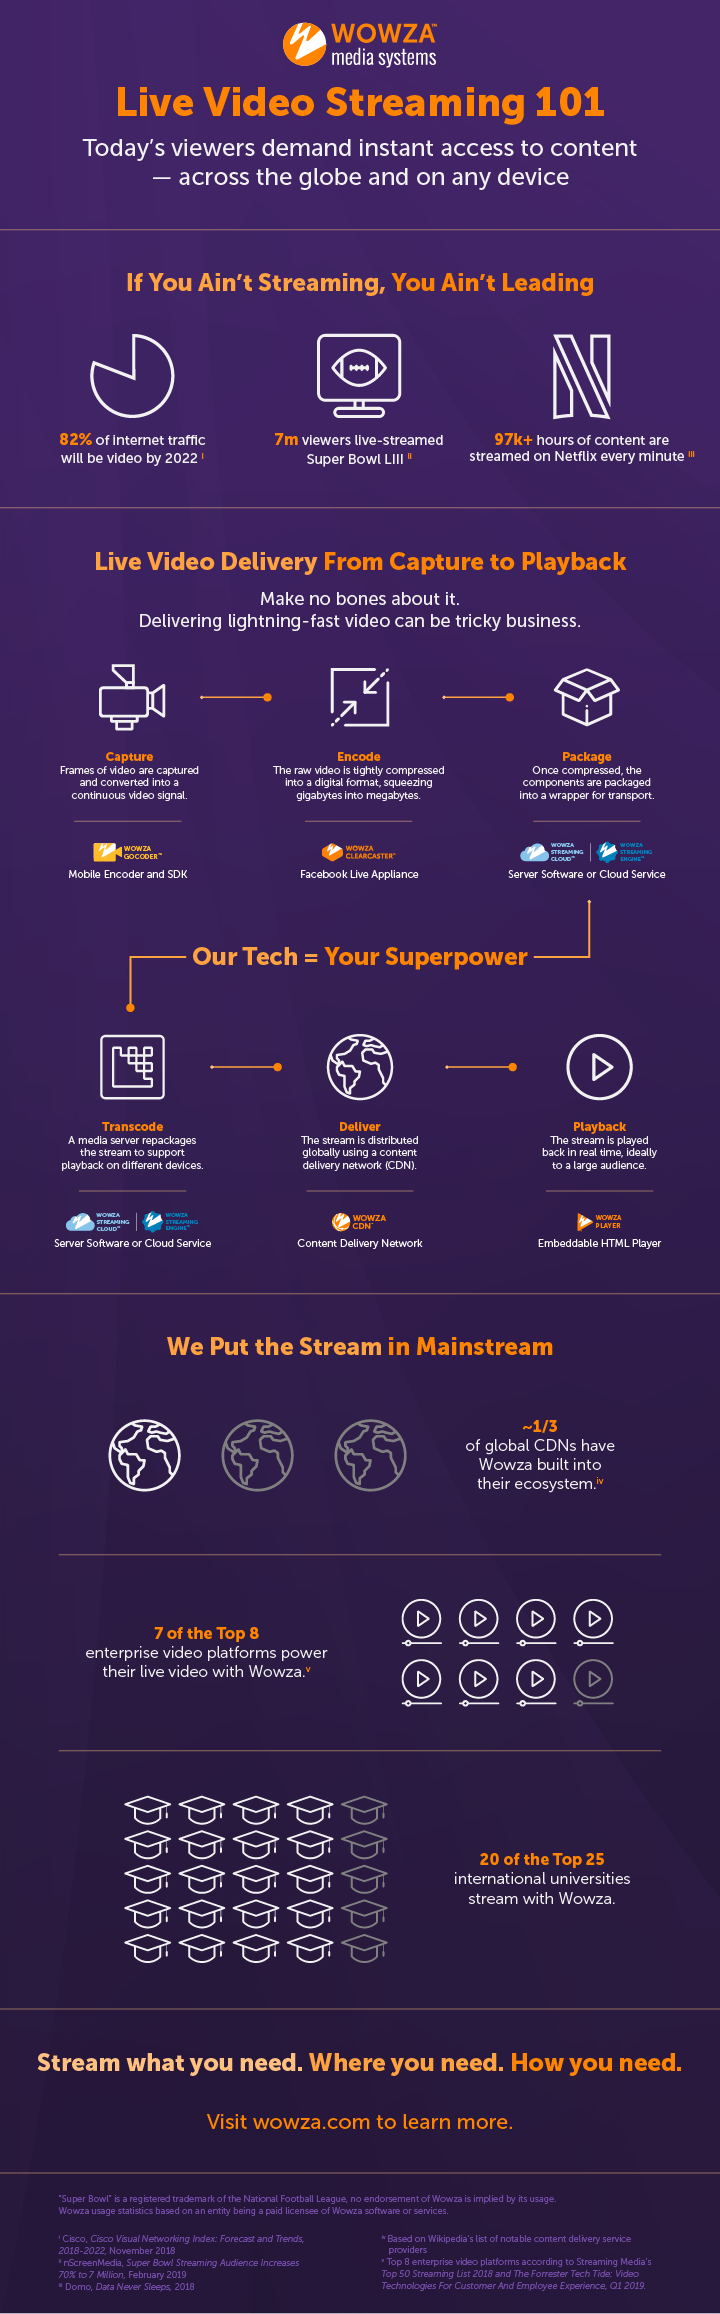 Infographic: Streaming 101